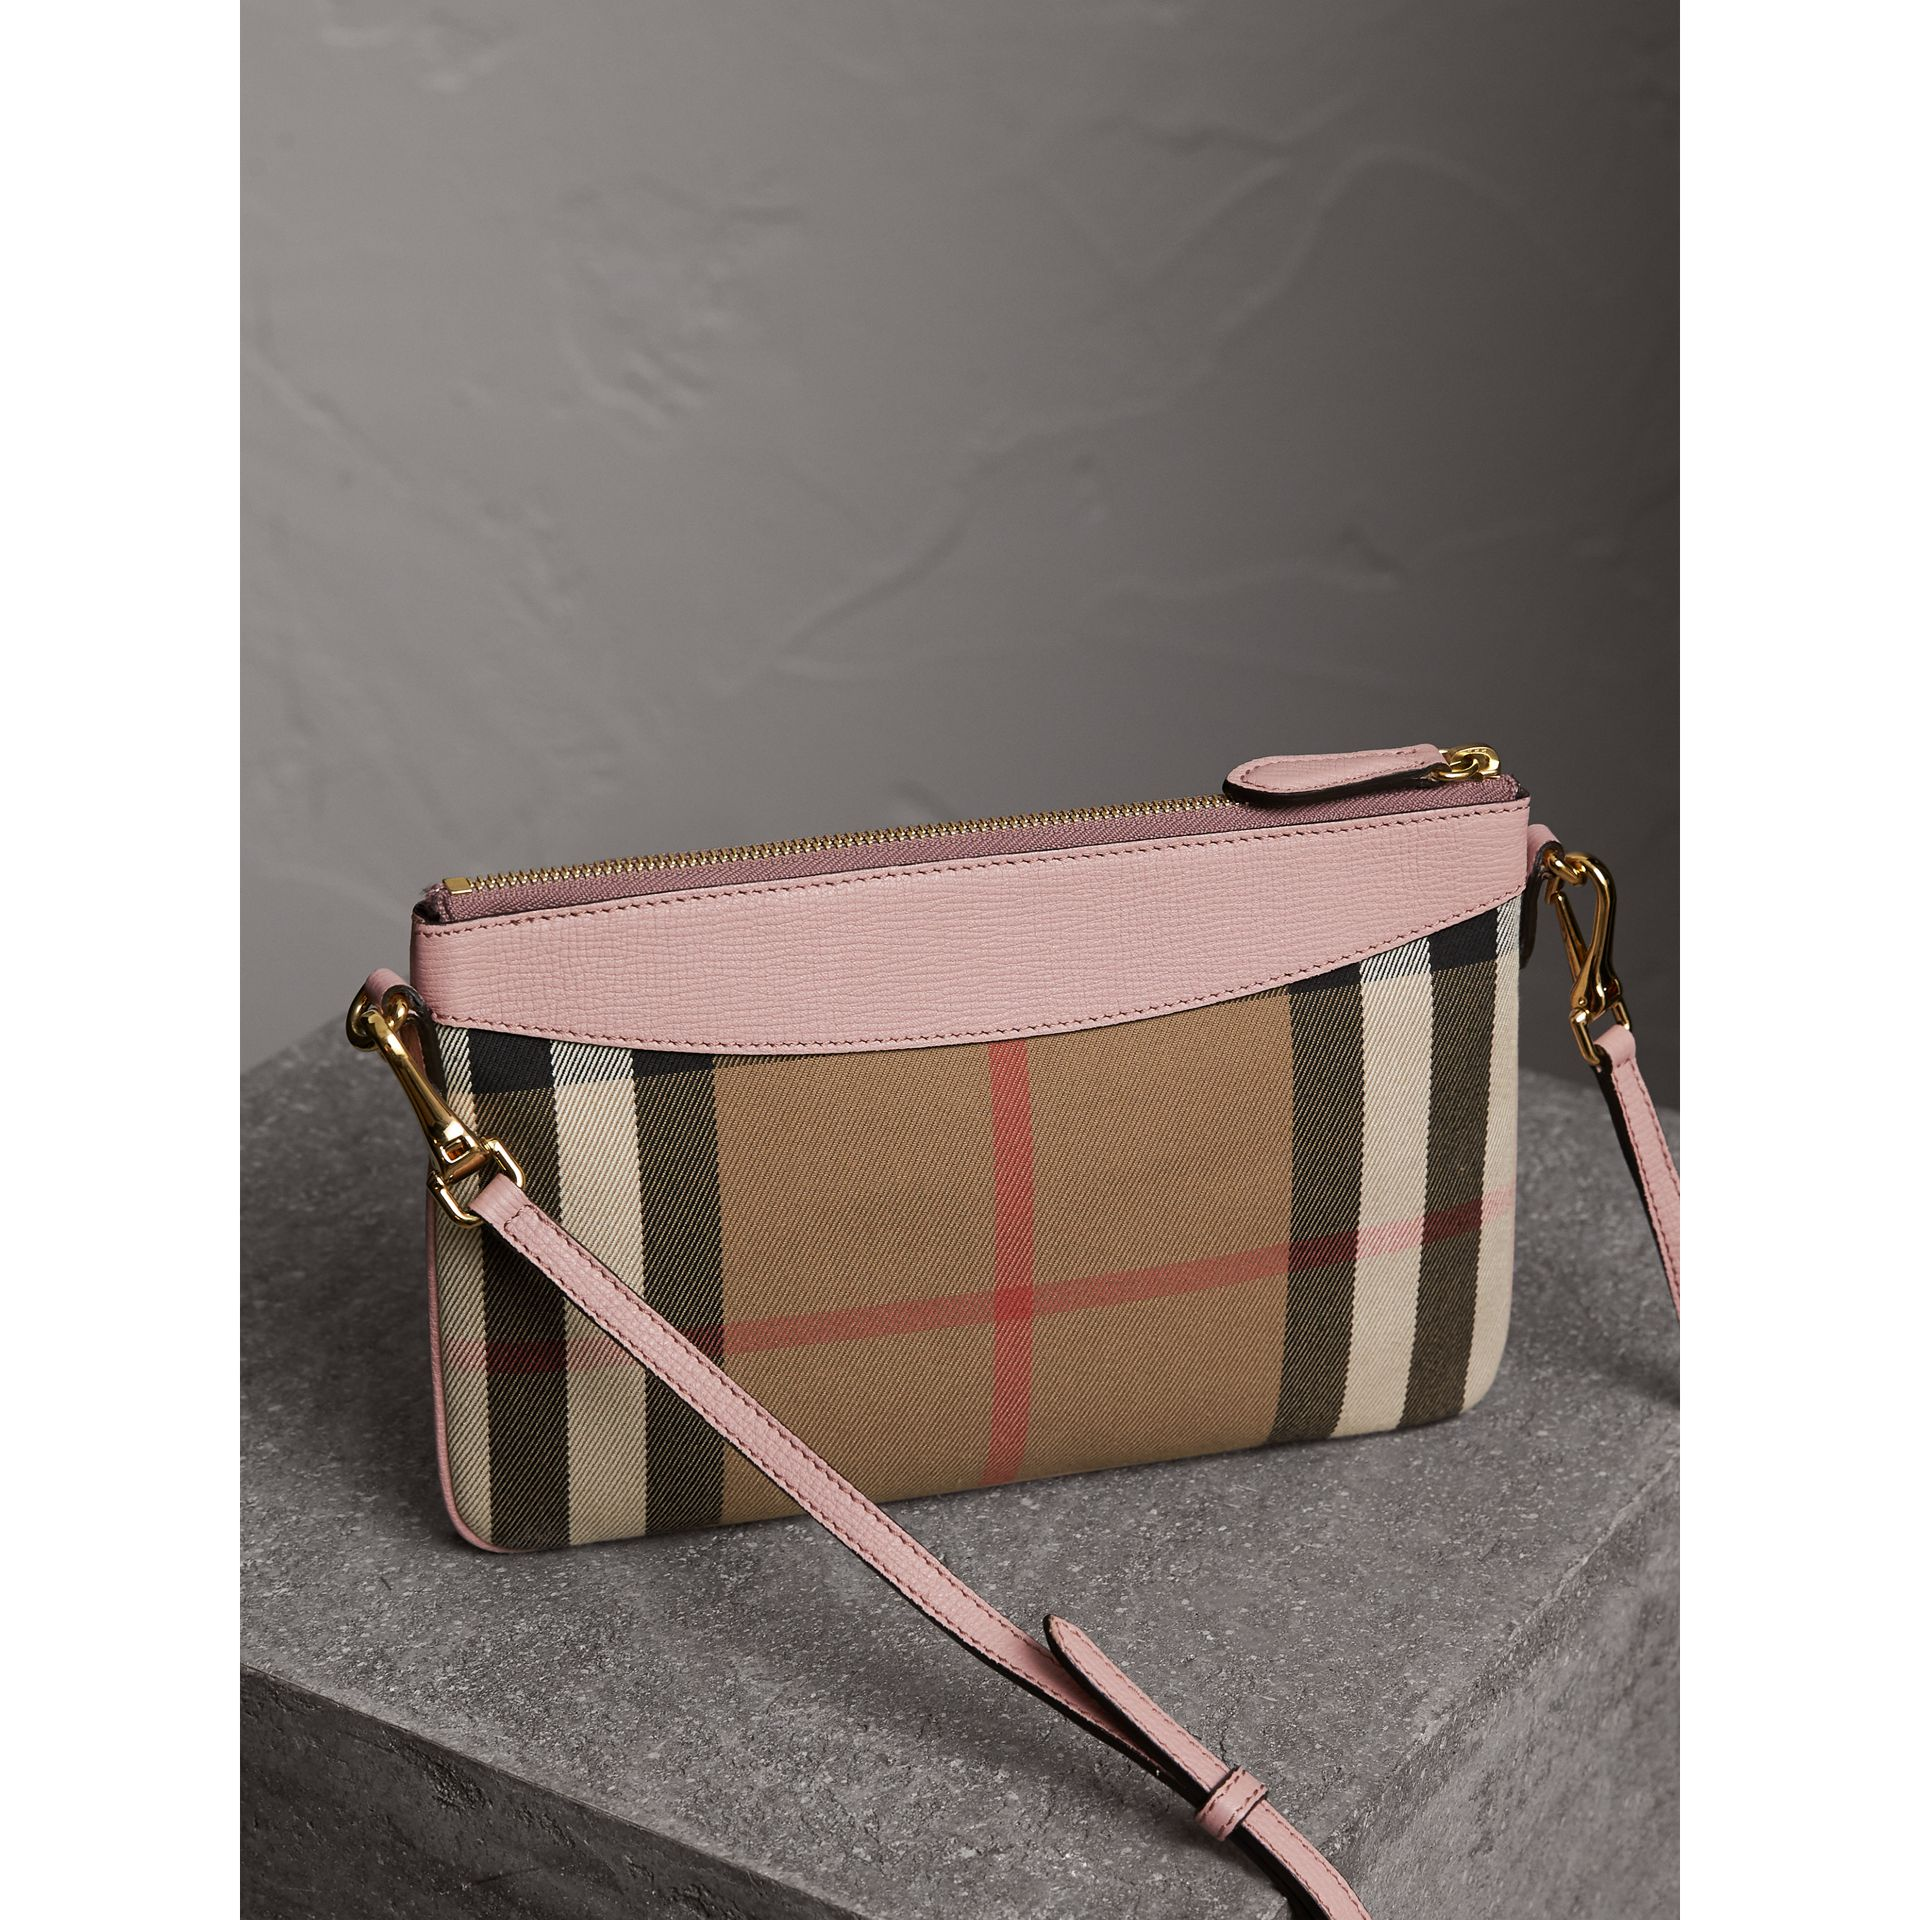 House Check and Leather Clutch Bag in Pale Orchid - Women | Burberry - gallery image 2